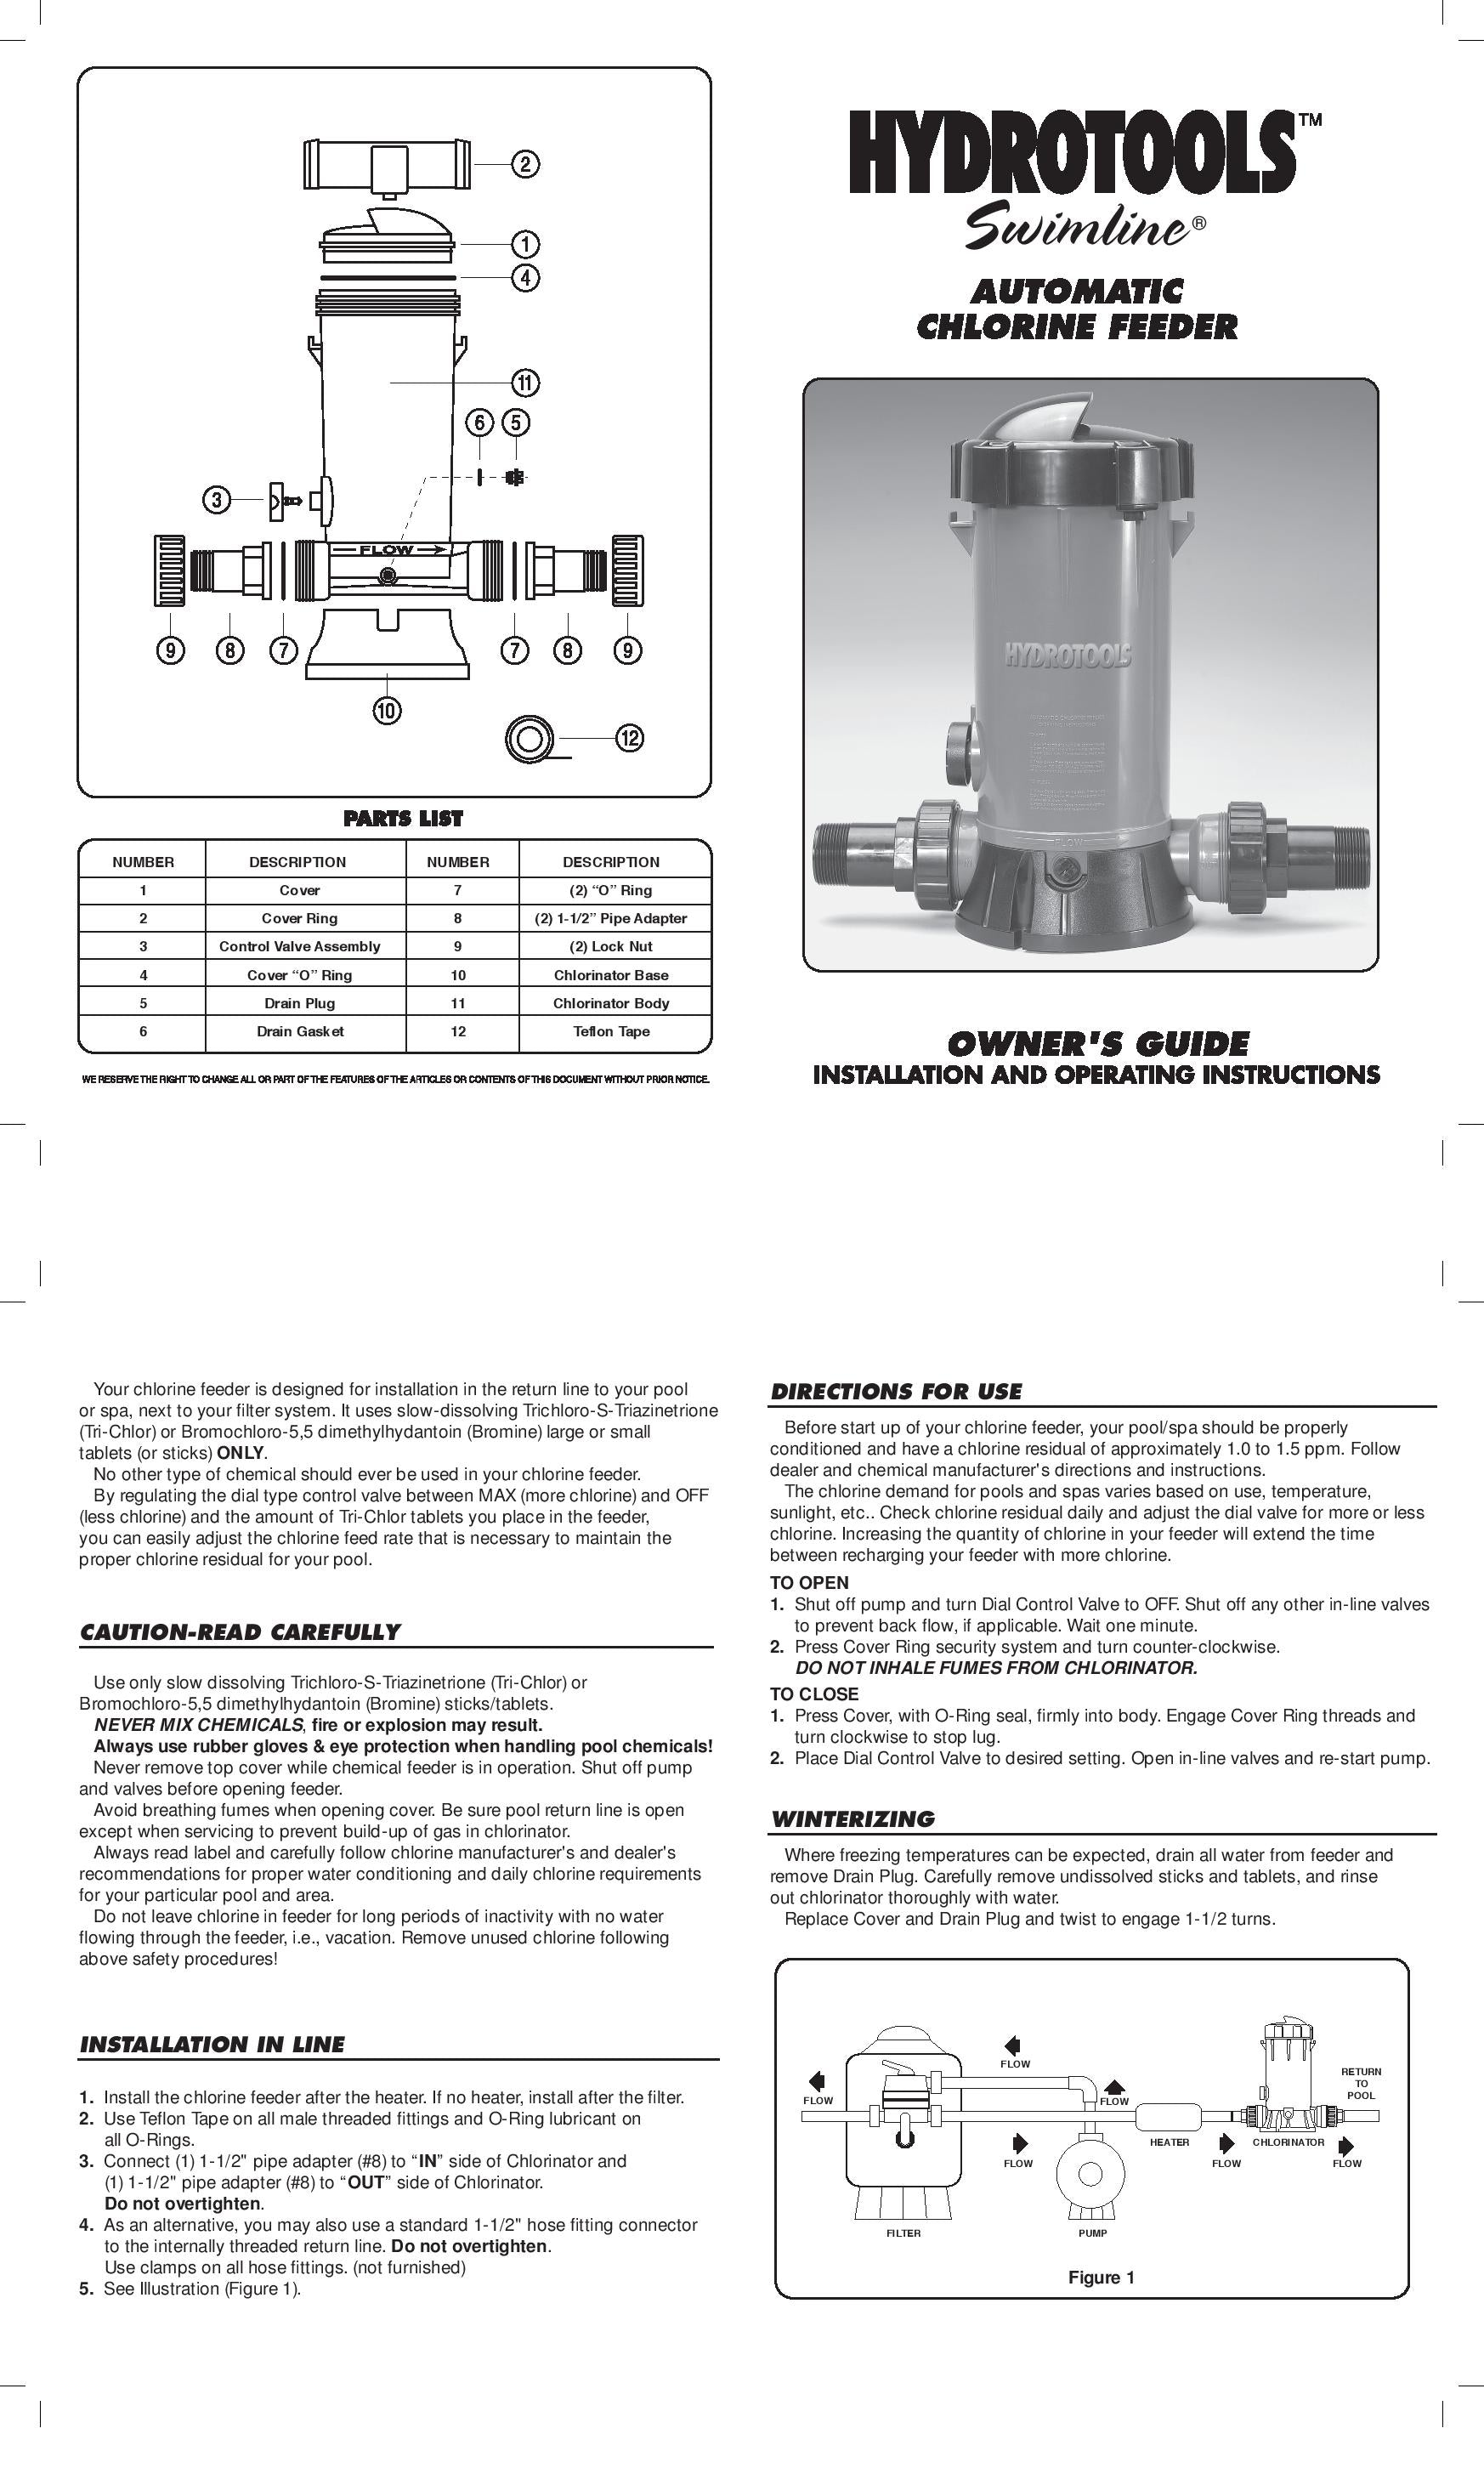 Model 8750 Automatic Chlorine Feeder Product Manual